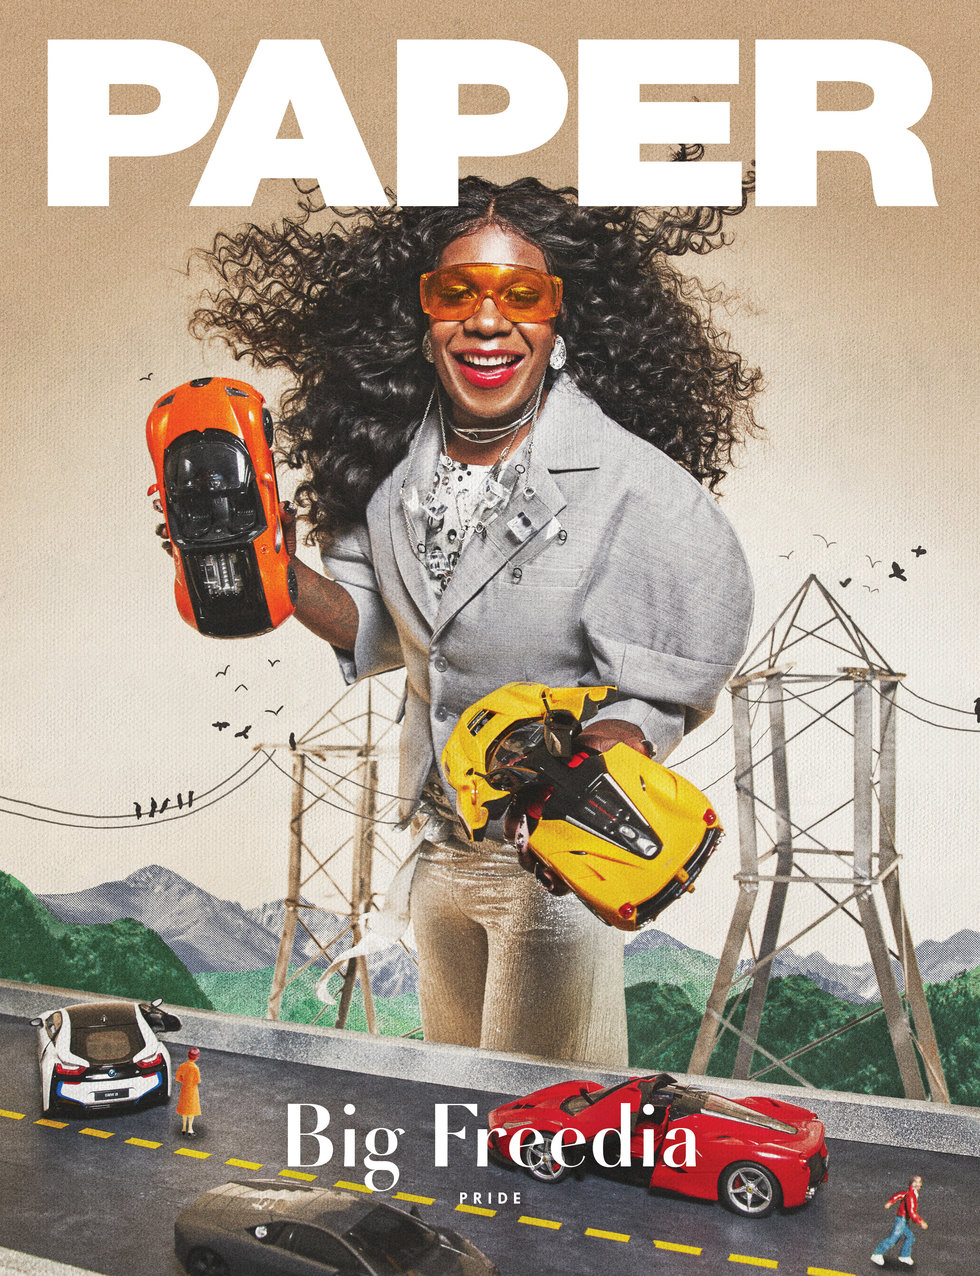 """PAPER MAGAZINE June online cover  Glasses + Necklace from """"Looplicated"""" collection wearing by Big Freedia. Jun 2018   http://www.papermag.com/big-freedia-pride-2580098422.html?rebelltitem=28#rebelltitem28"""